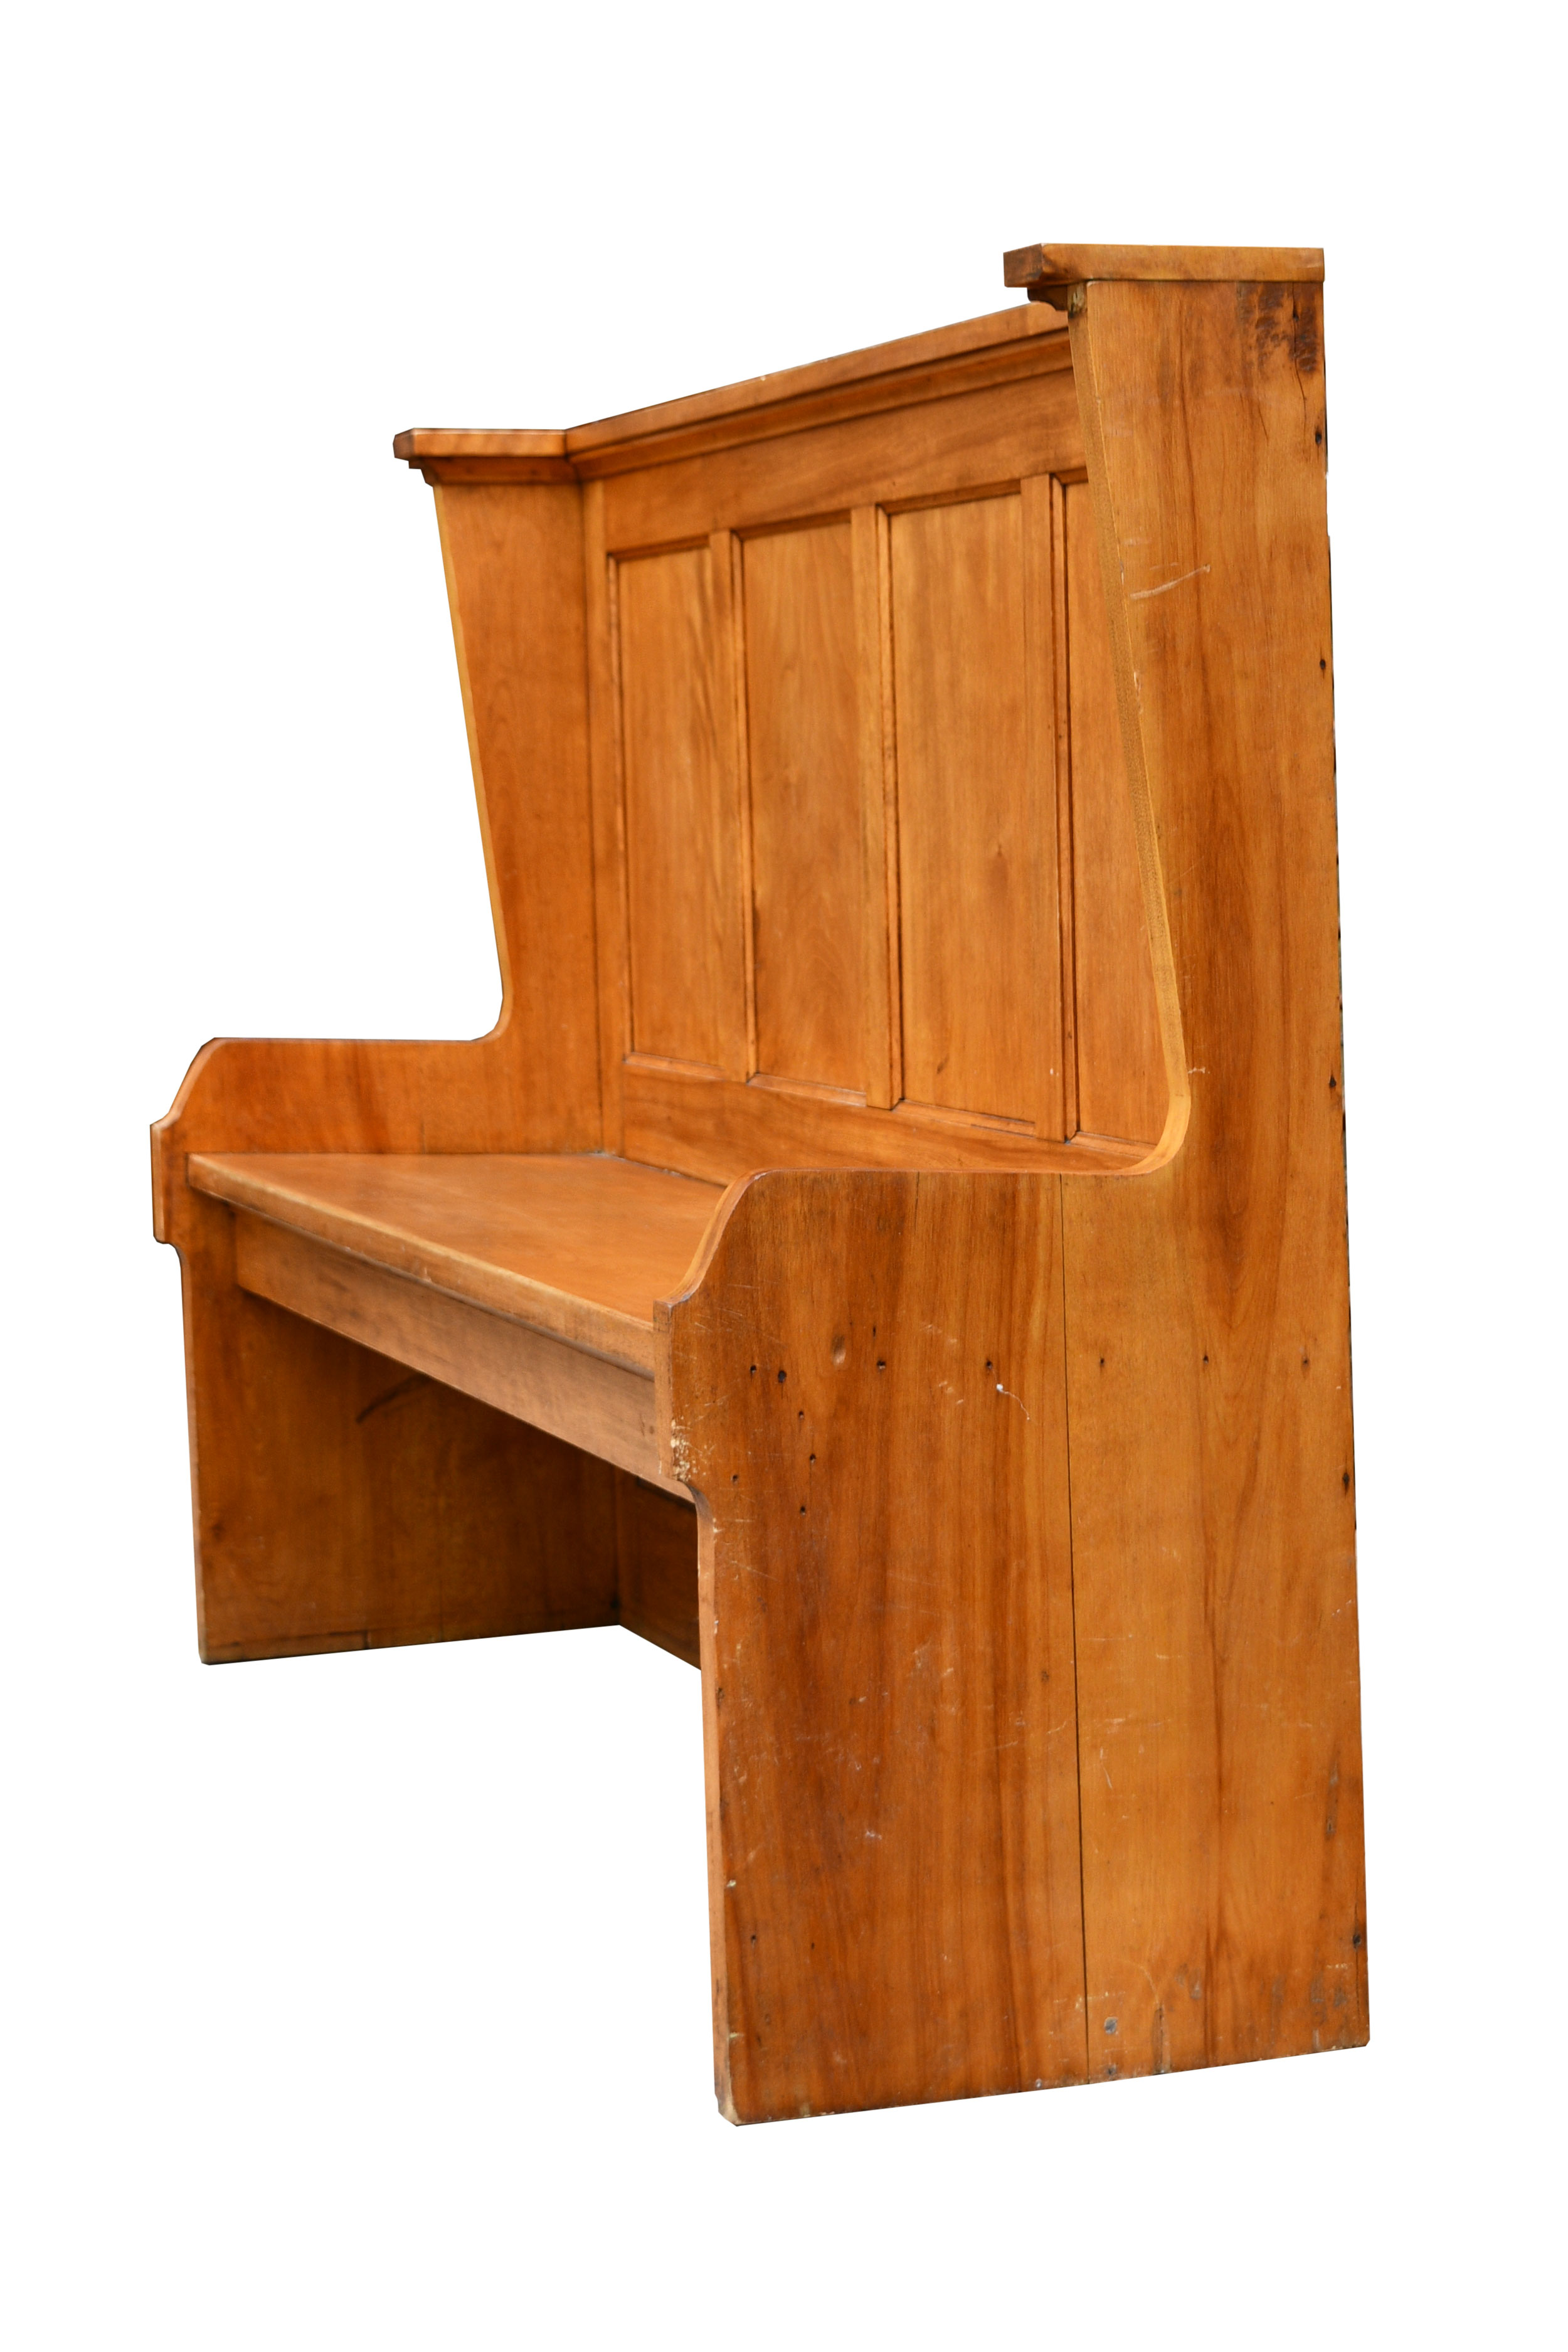 48337-maple-booth-bench-front-angle-also.jpg